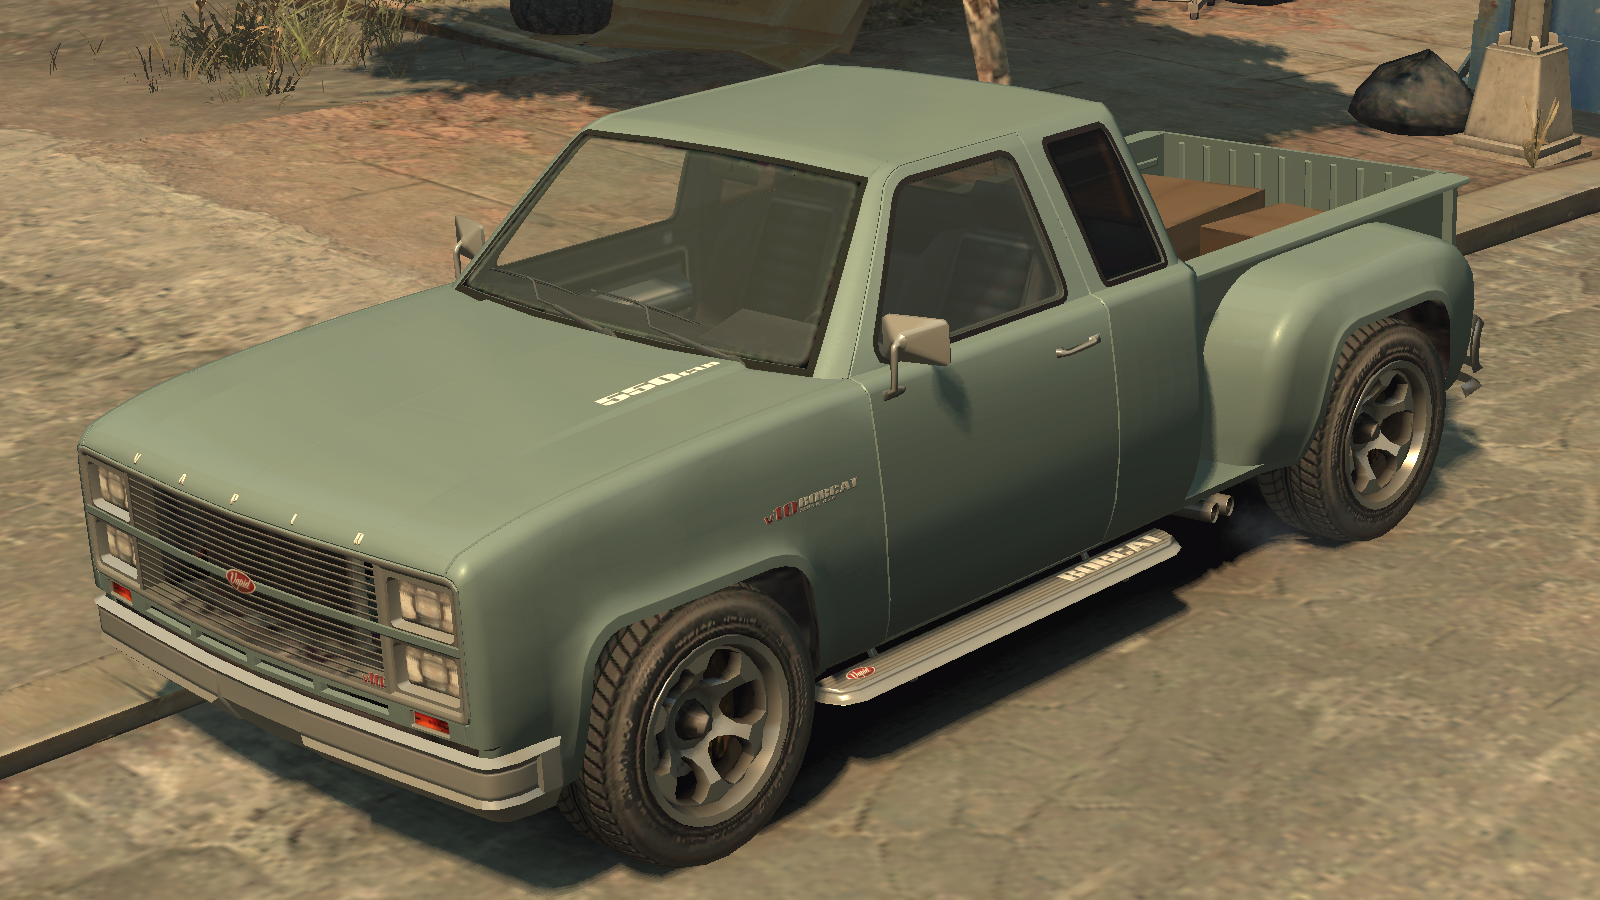 All Chevy chevy c10 wiki : Bobcat | GTA Wiki | FANDOM powered by Wikia